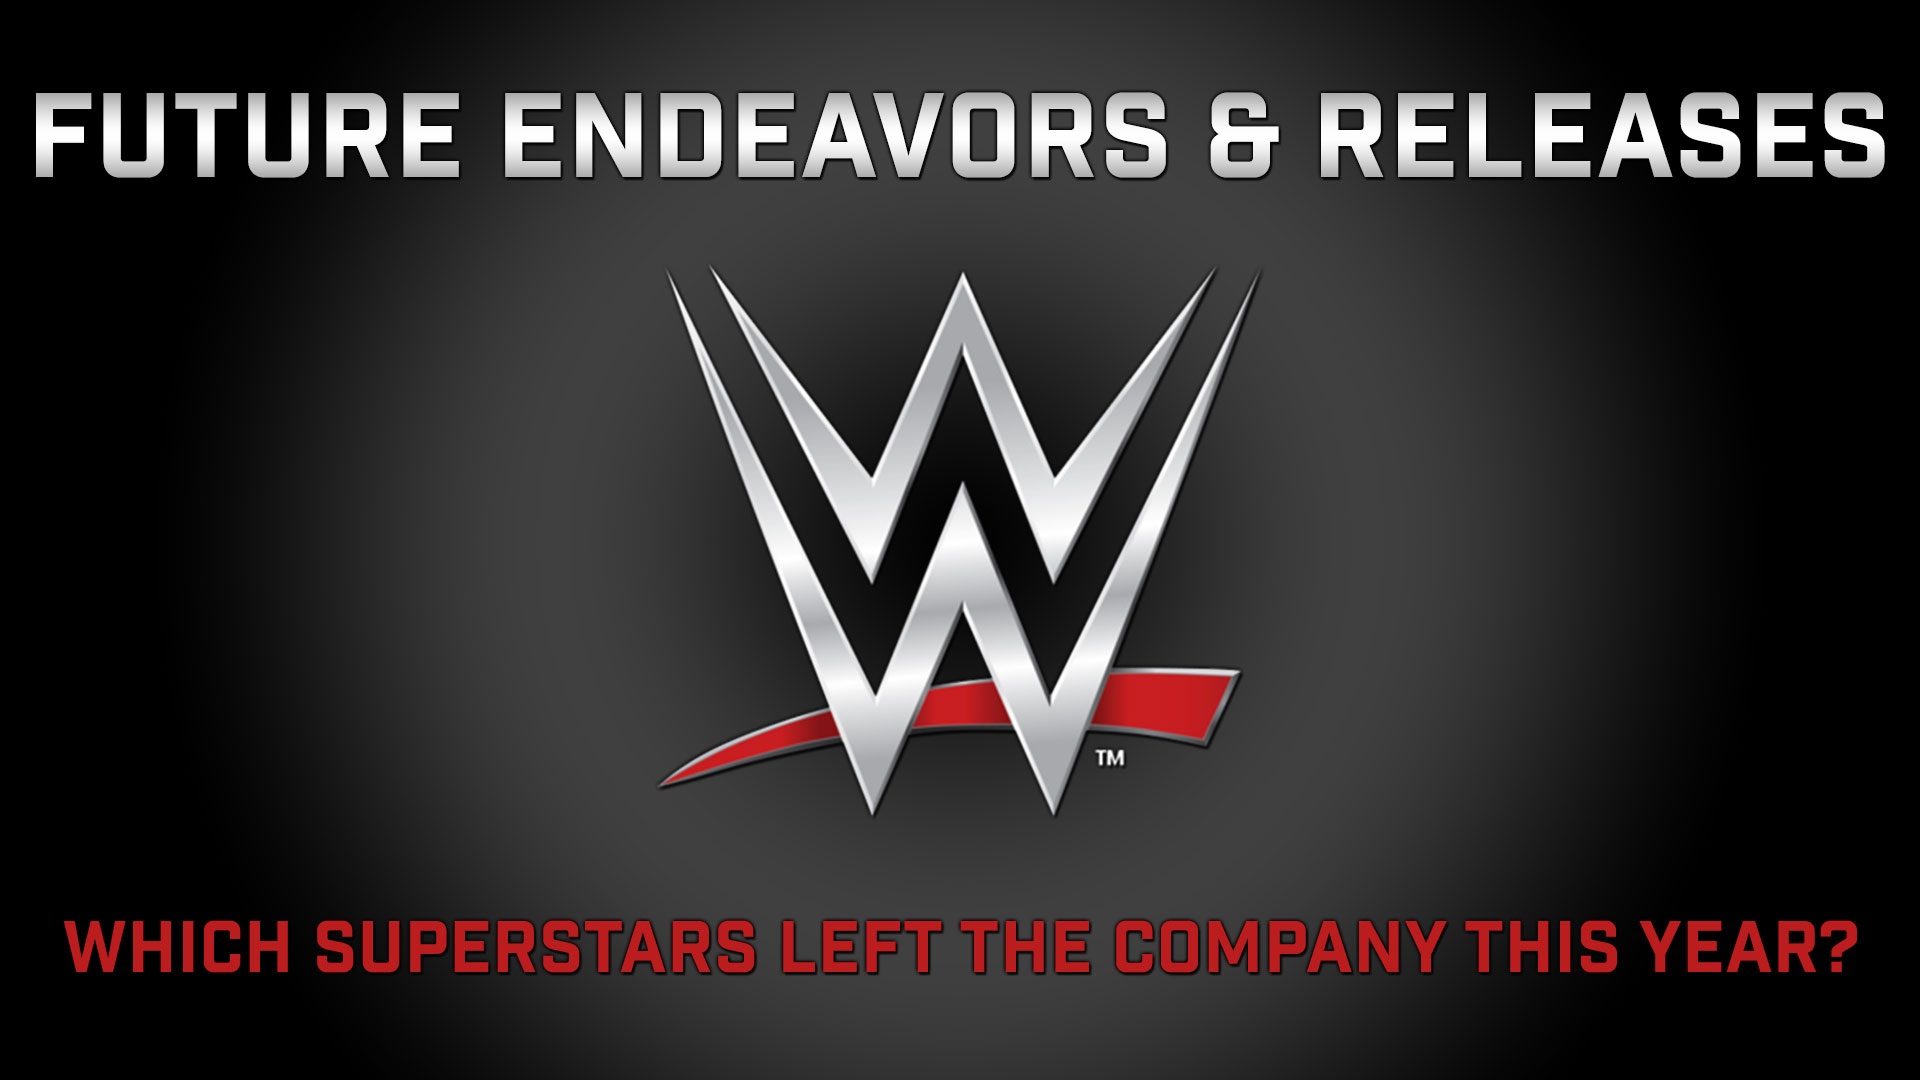 Who got fired from WWE in 2015 who left WWE future endeavors this year